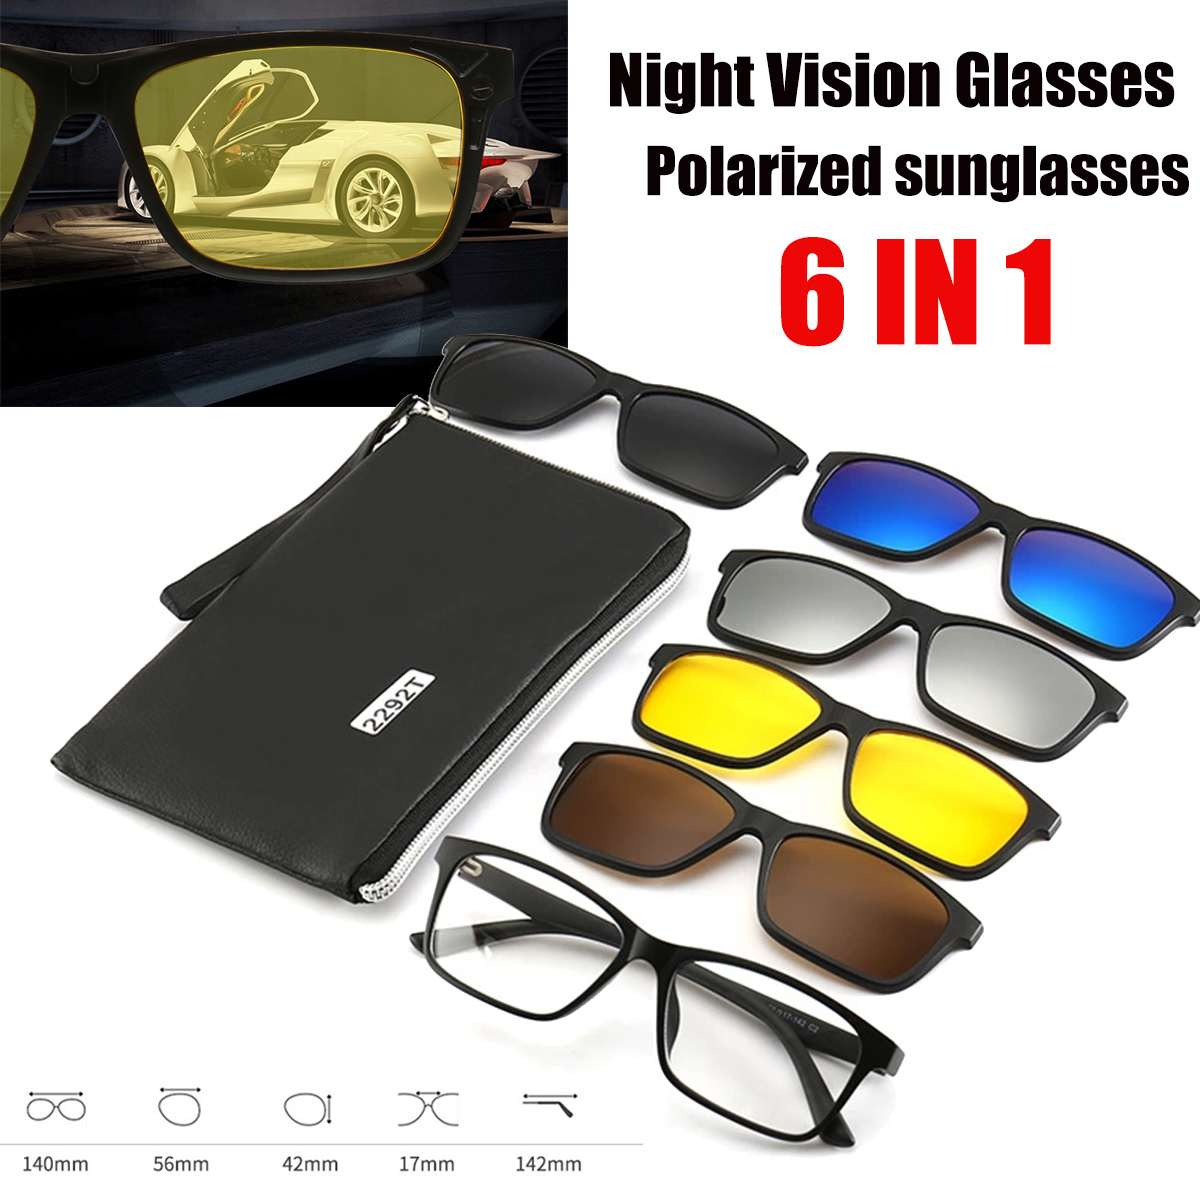 Newest <font><b>6</b></font> <font><b>IN</b></font> <font><b>1</b></font> Night Vision Glasses Polarized <font><b>Sunglasses</b></font> TR90 Retro Frame Eyewear Night Vision Driving Optical Glasses With Bag image